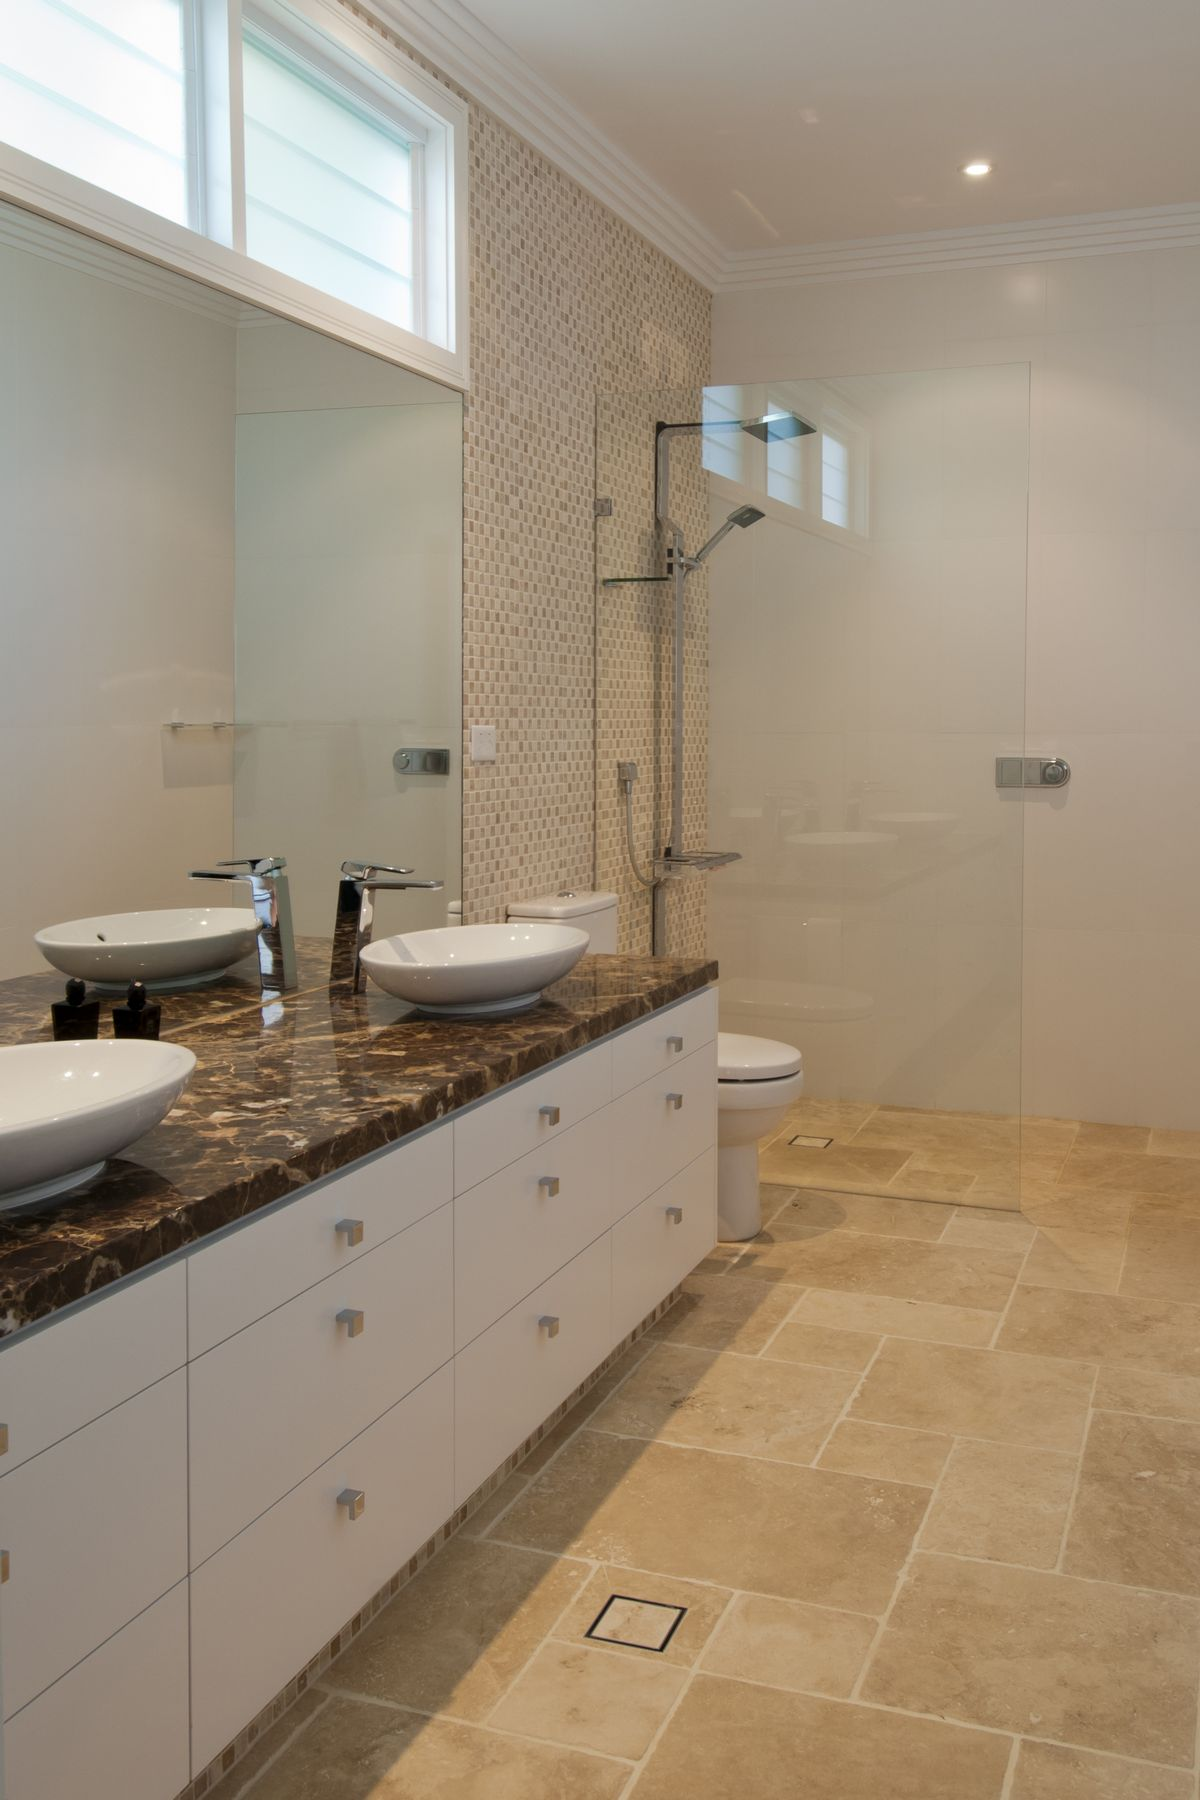 Stunning ensuite with caesar stone benchtop and 2pac cabinetry with drawers for ample storage